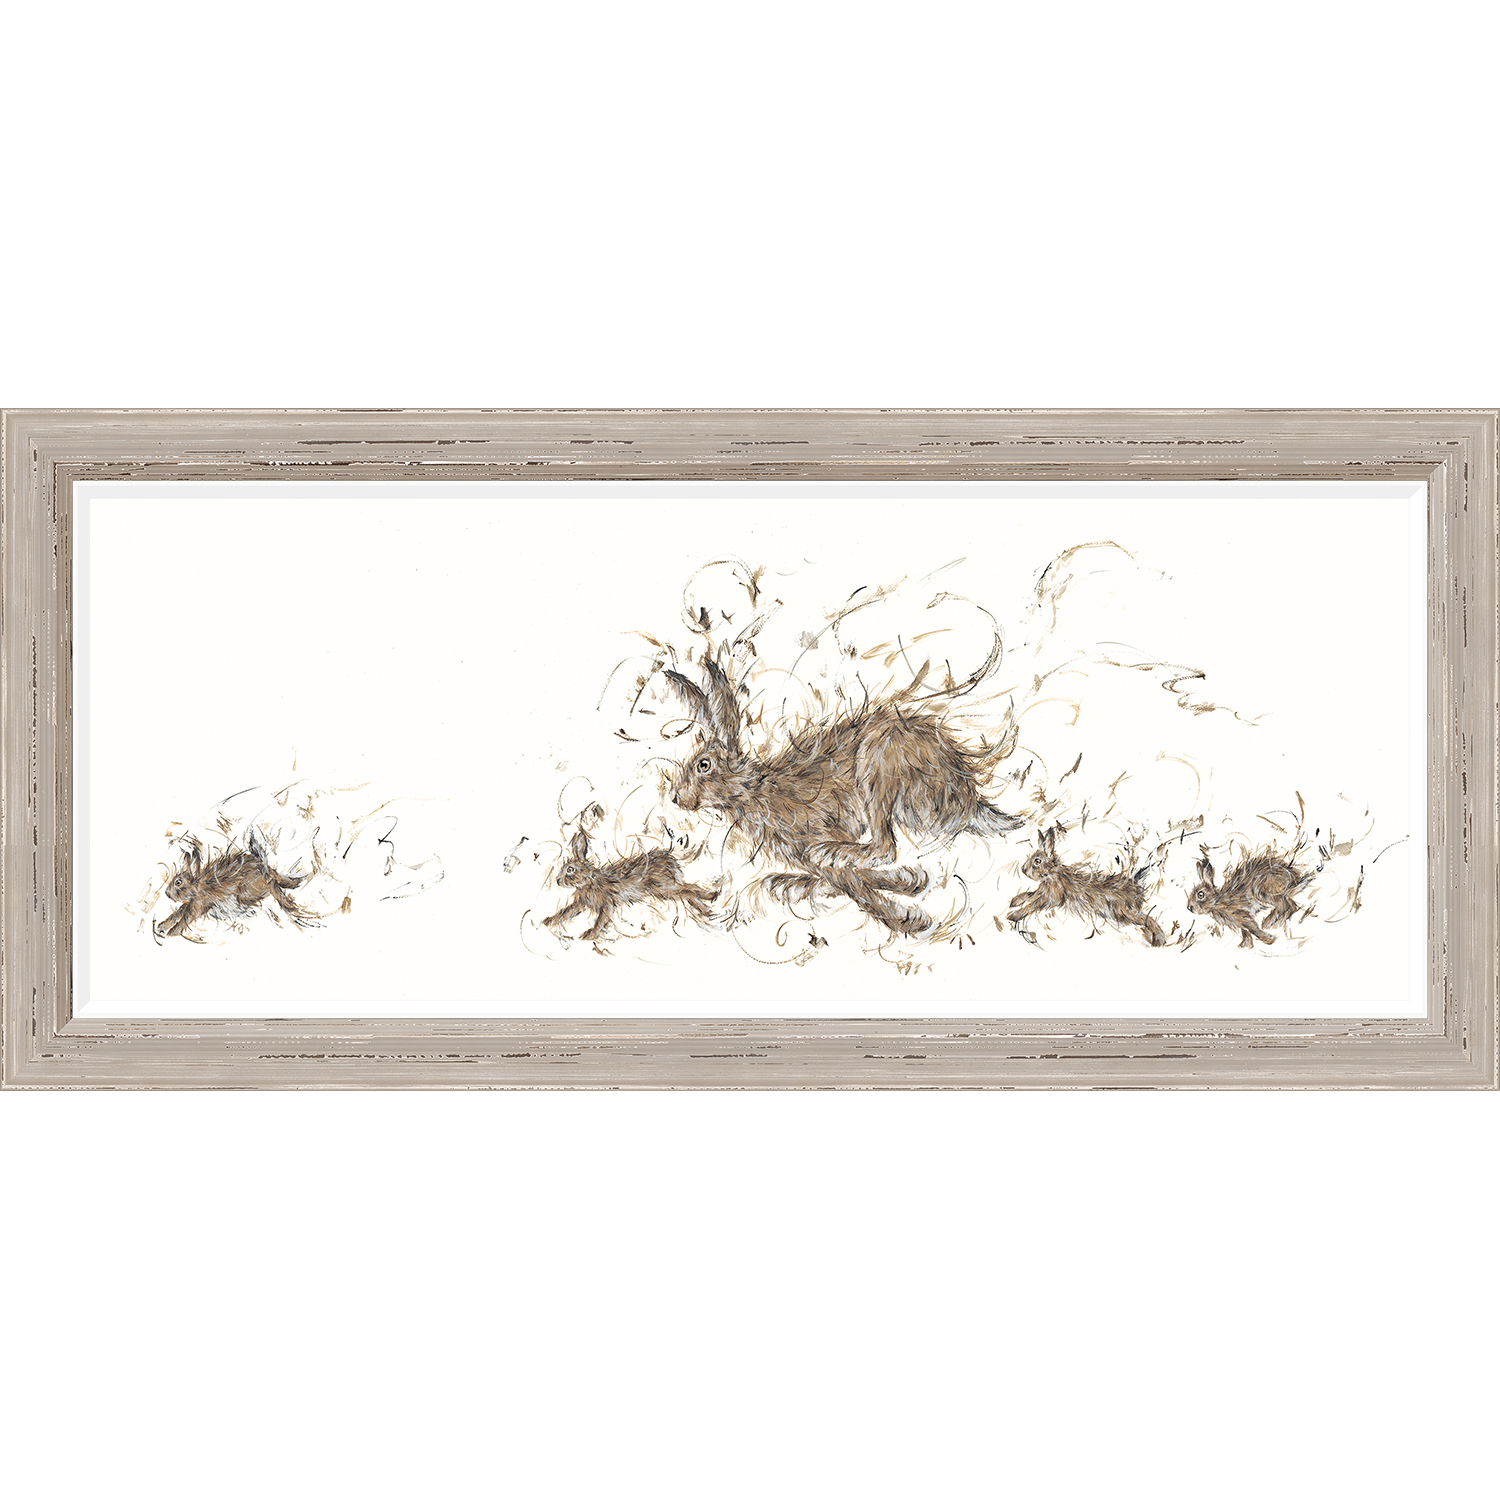 Image of A Grand Day Out Limited Edition Artwork by Aaminah Snowdon